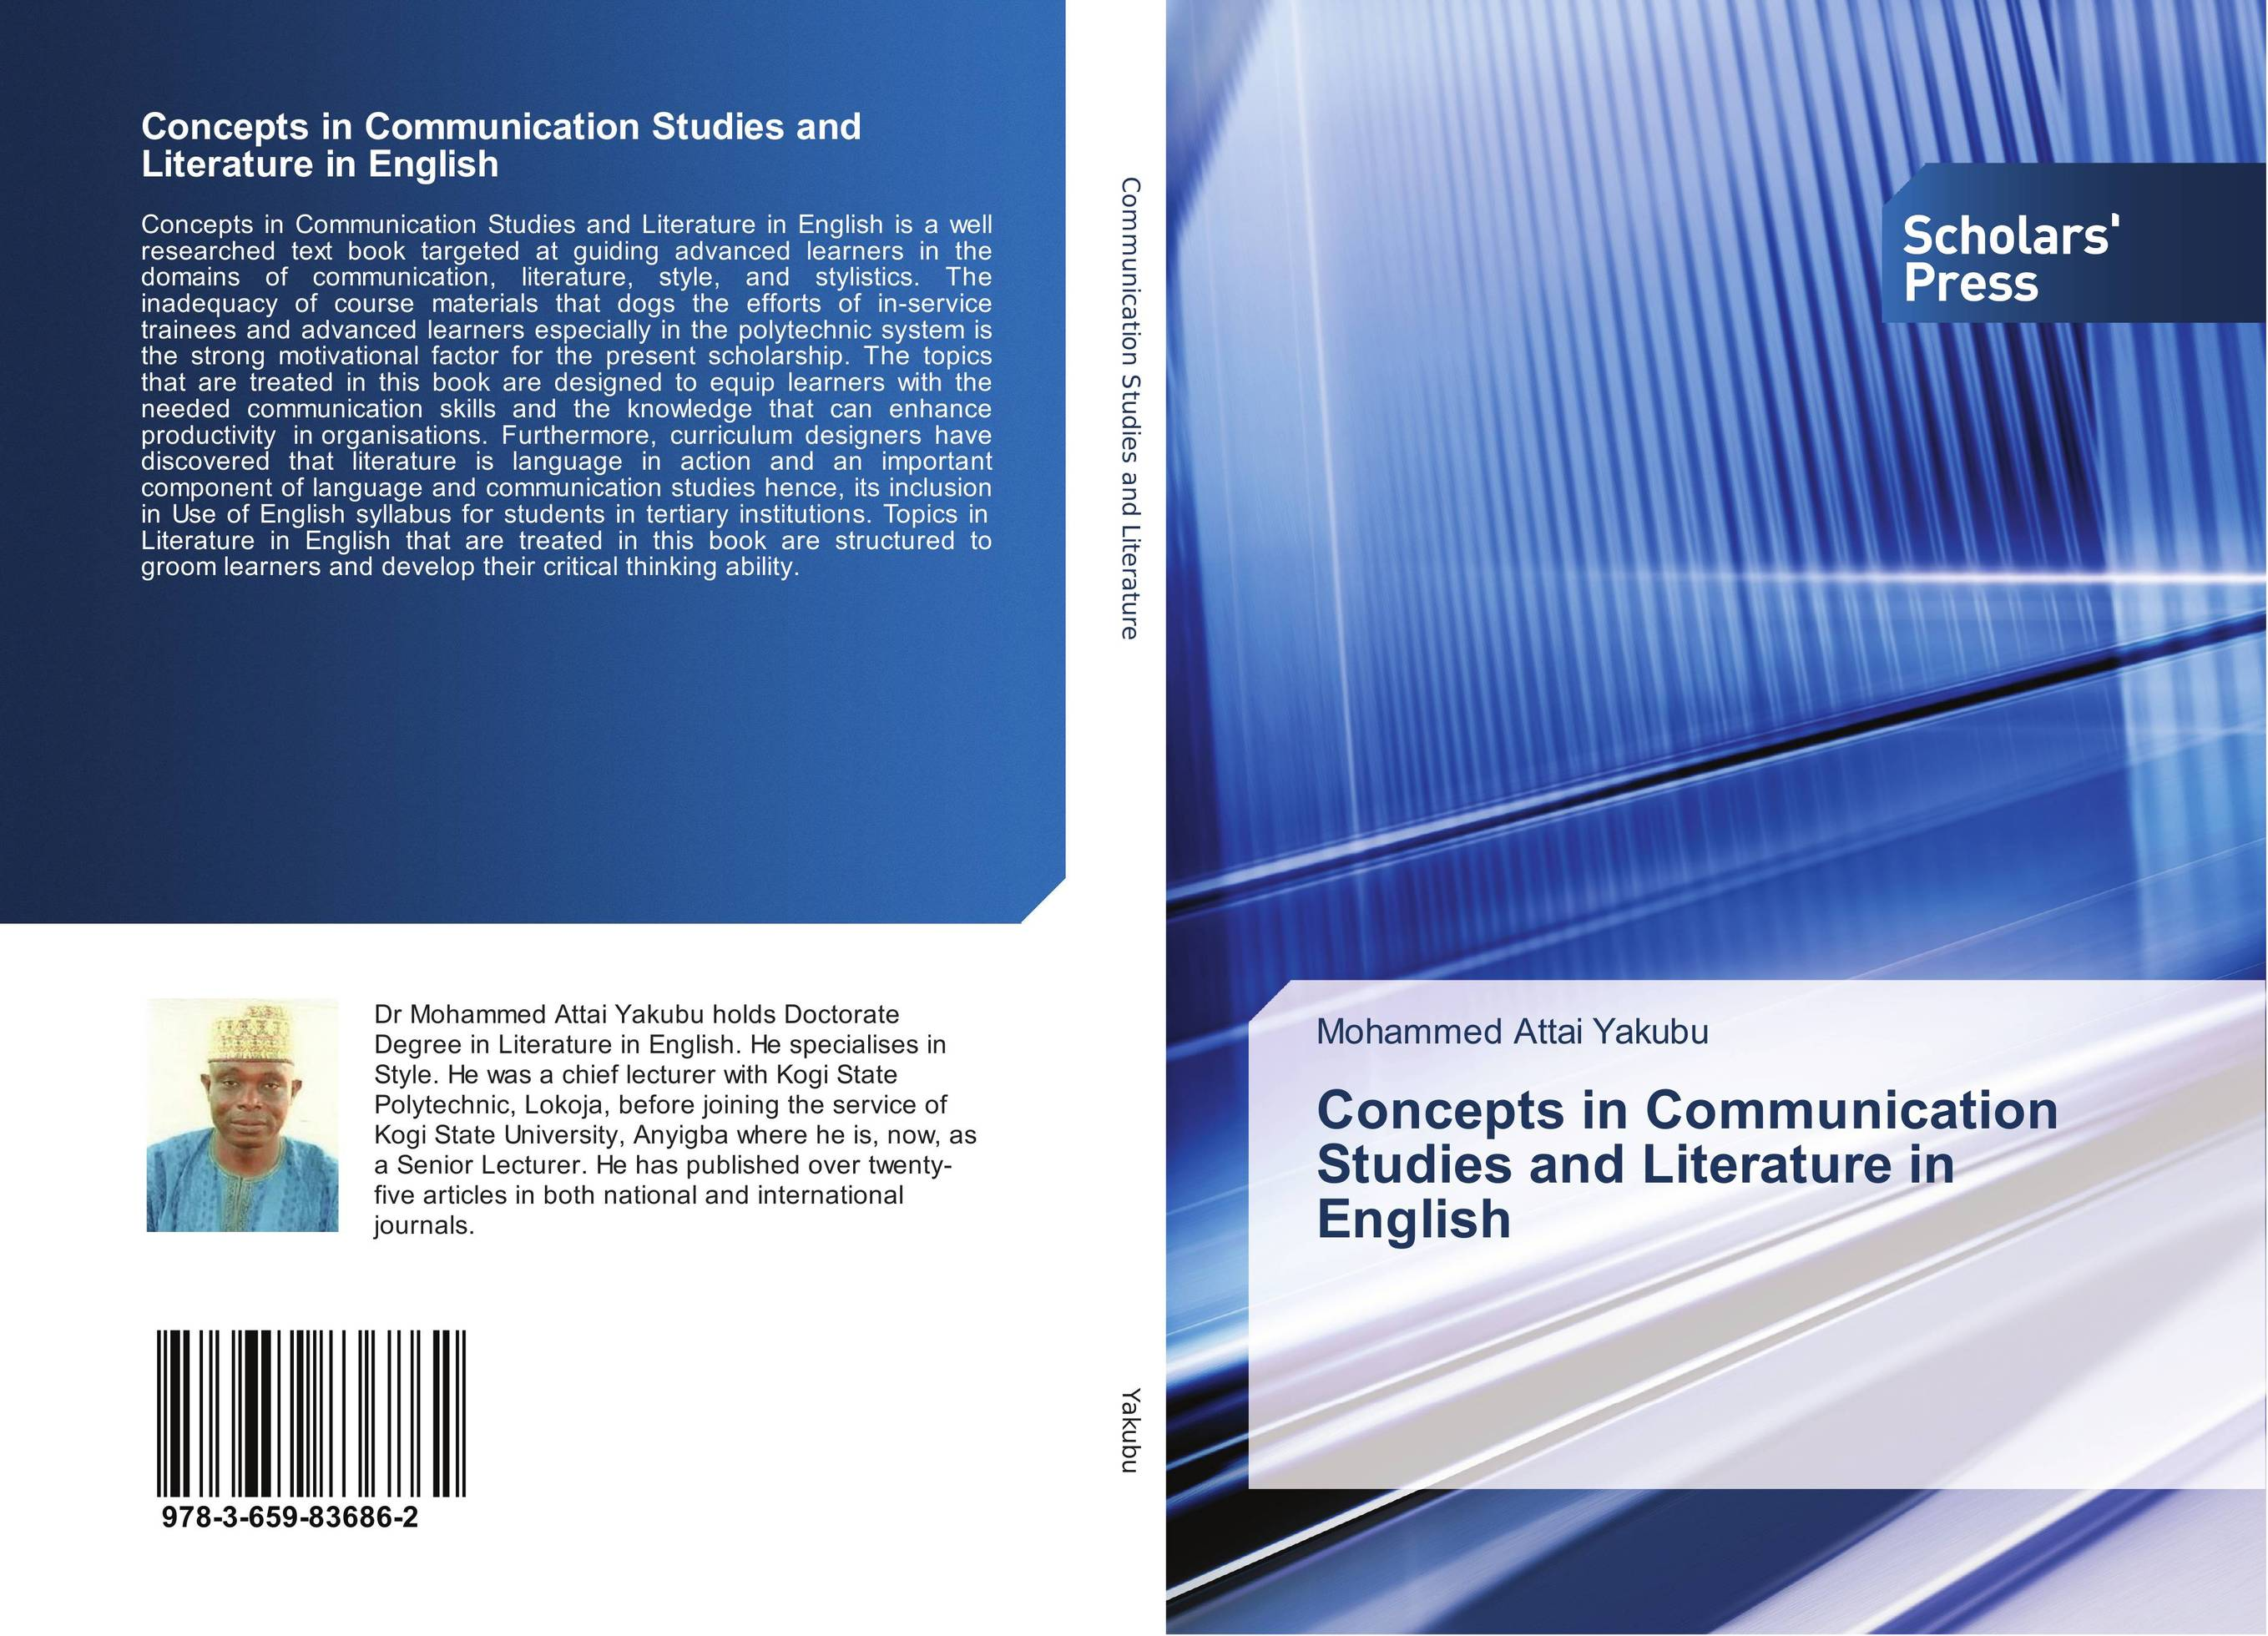 Concepts in Communication Studies and Literature in English